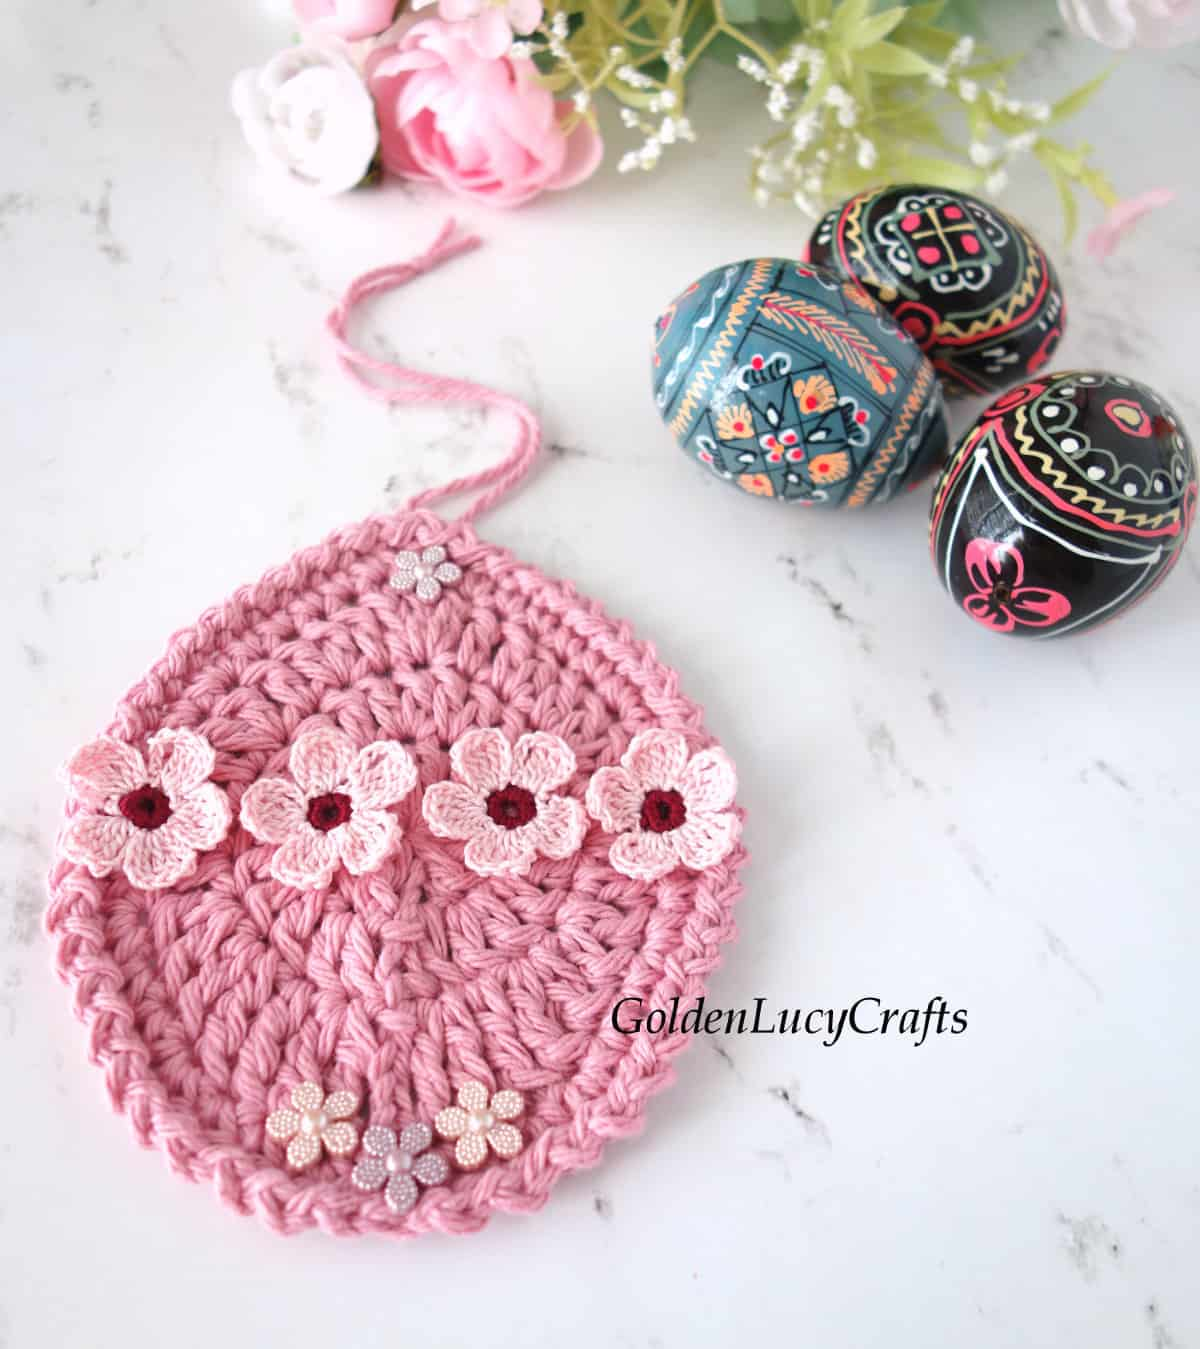 Crocheted Easter egg ornament embellished with small flowers, three wooden painted eggs next to it.